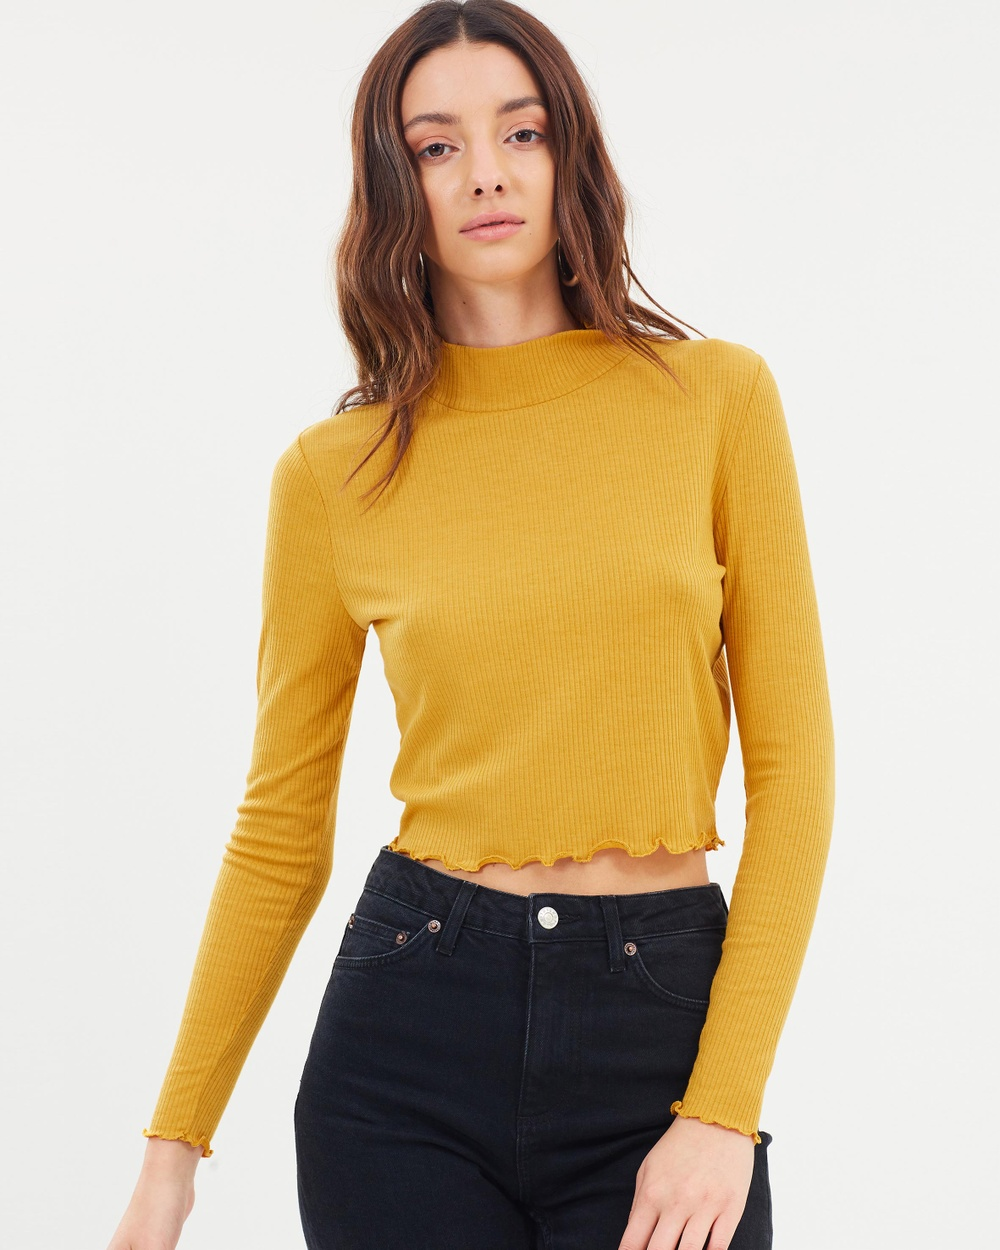 Cotton On Lylah Mock Neck Chop Top Cropped tops Golden Nugget Lylah Mock Neck Chop Top